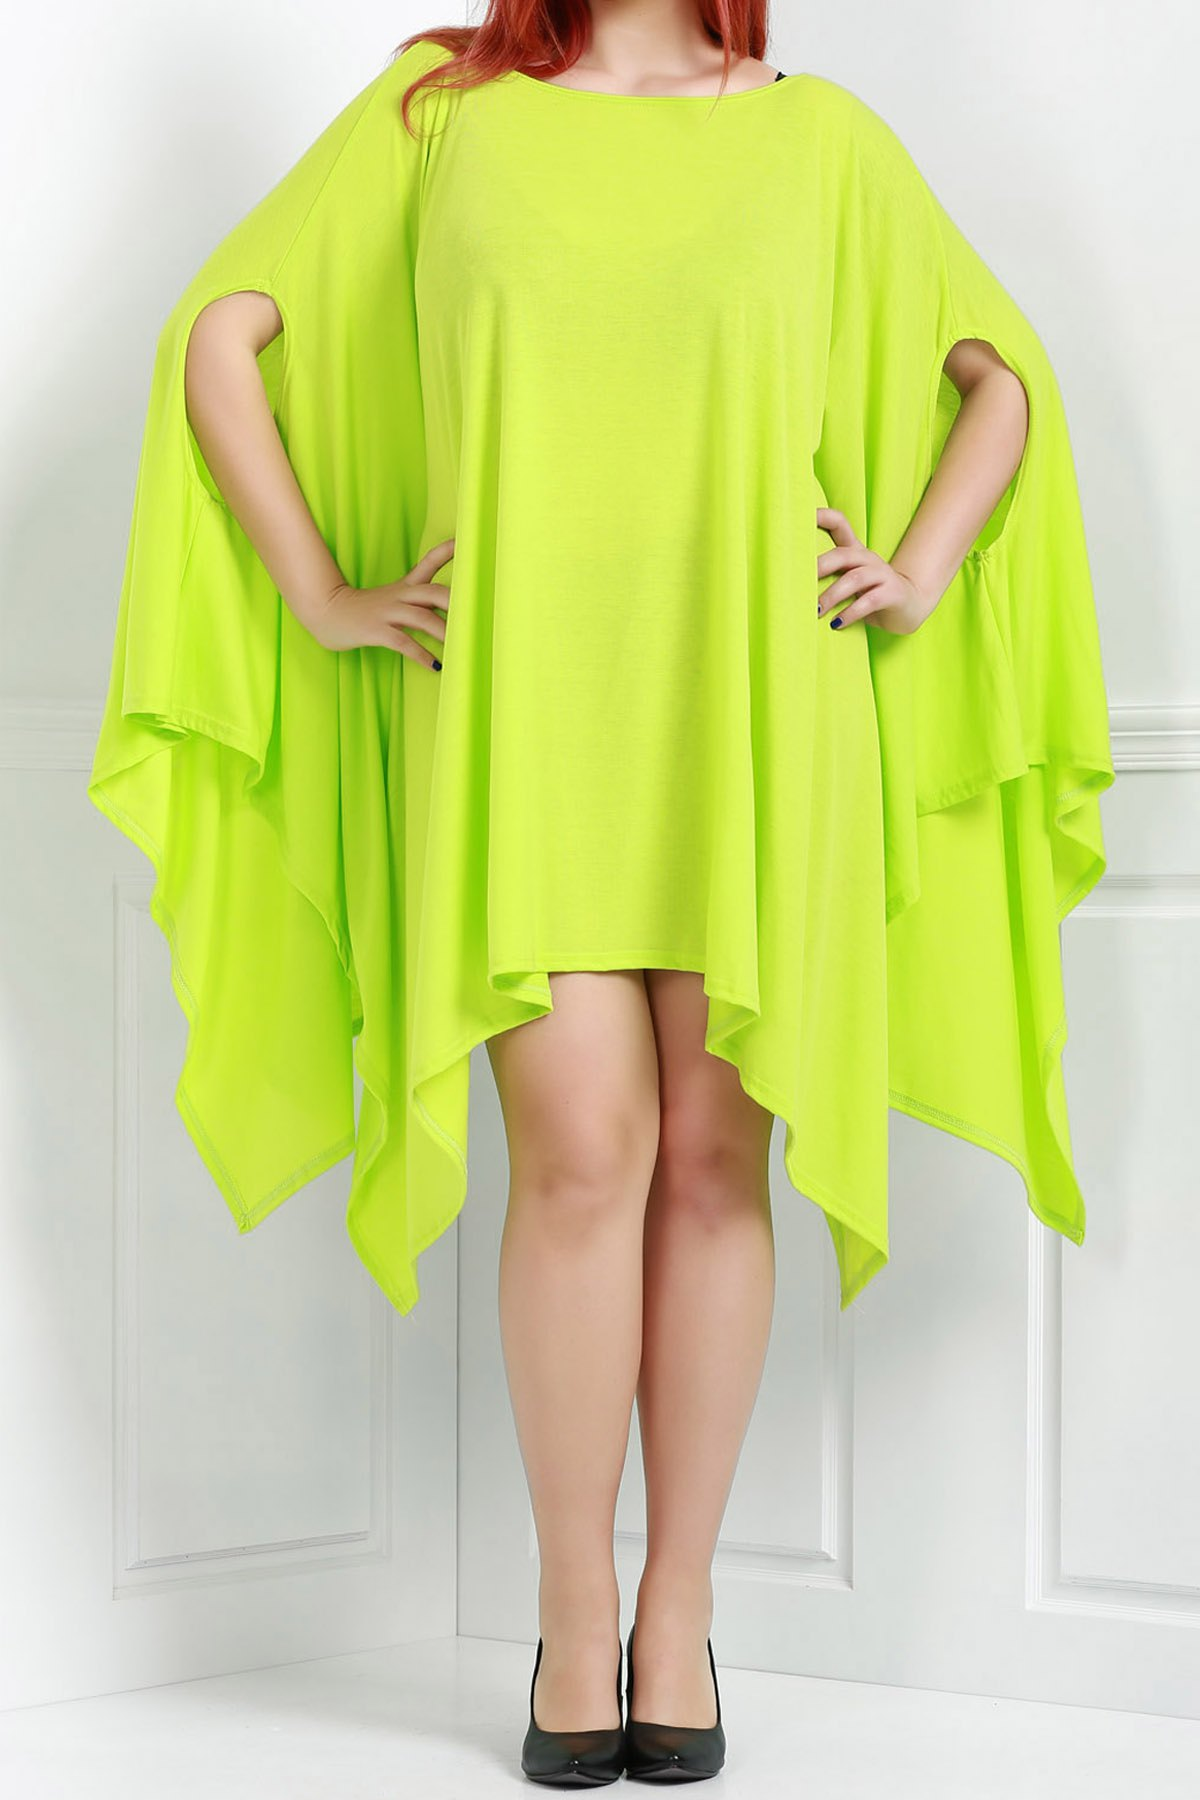 Handkerchief Plus Size Caped Top with Batwing Sleeve - GREEN 2XL